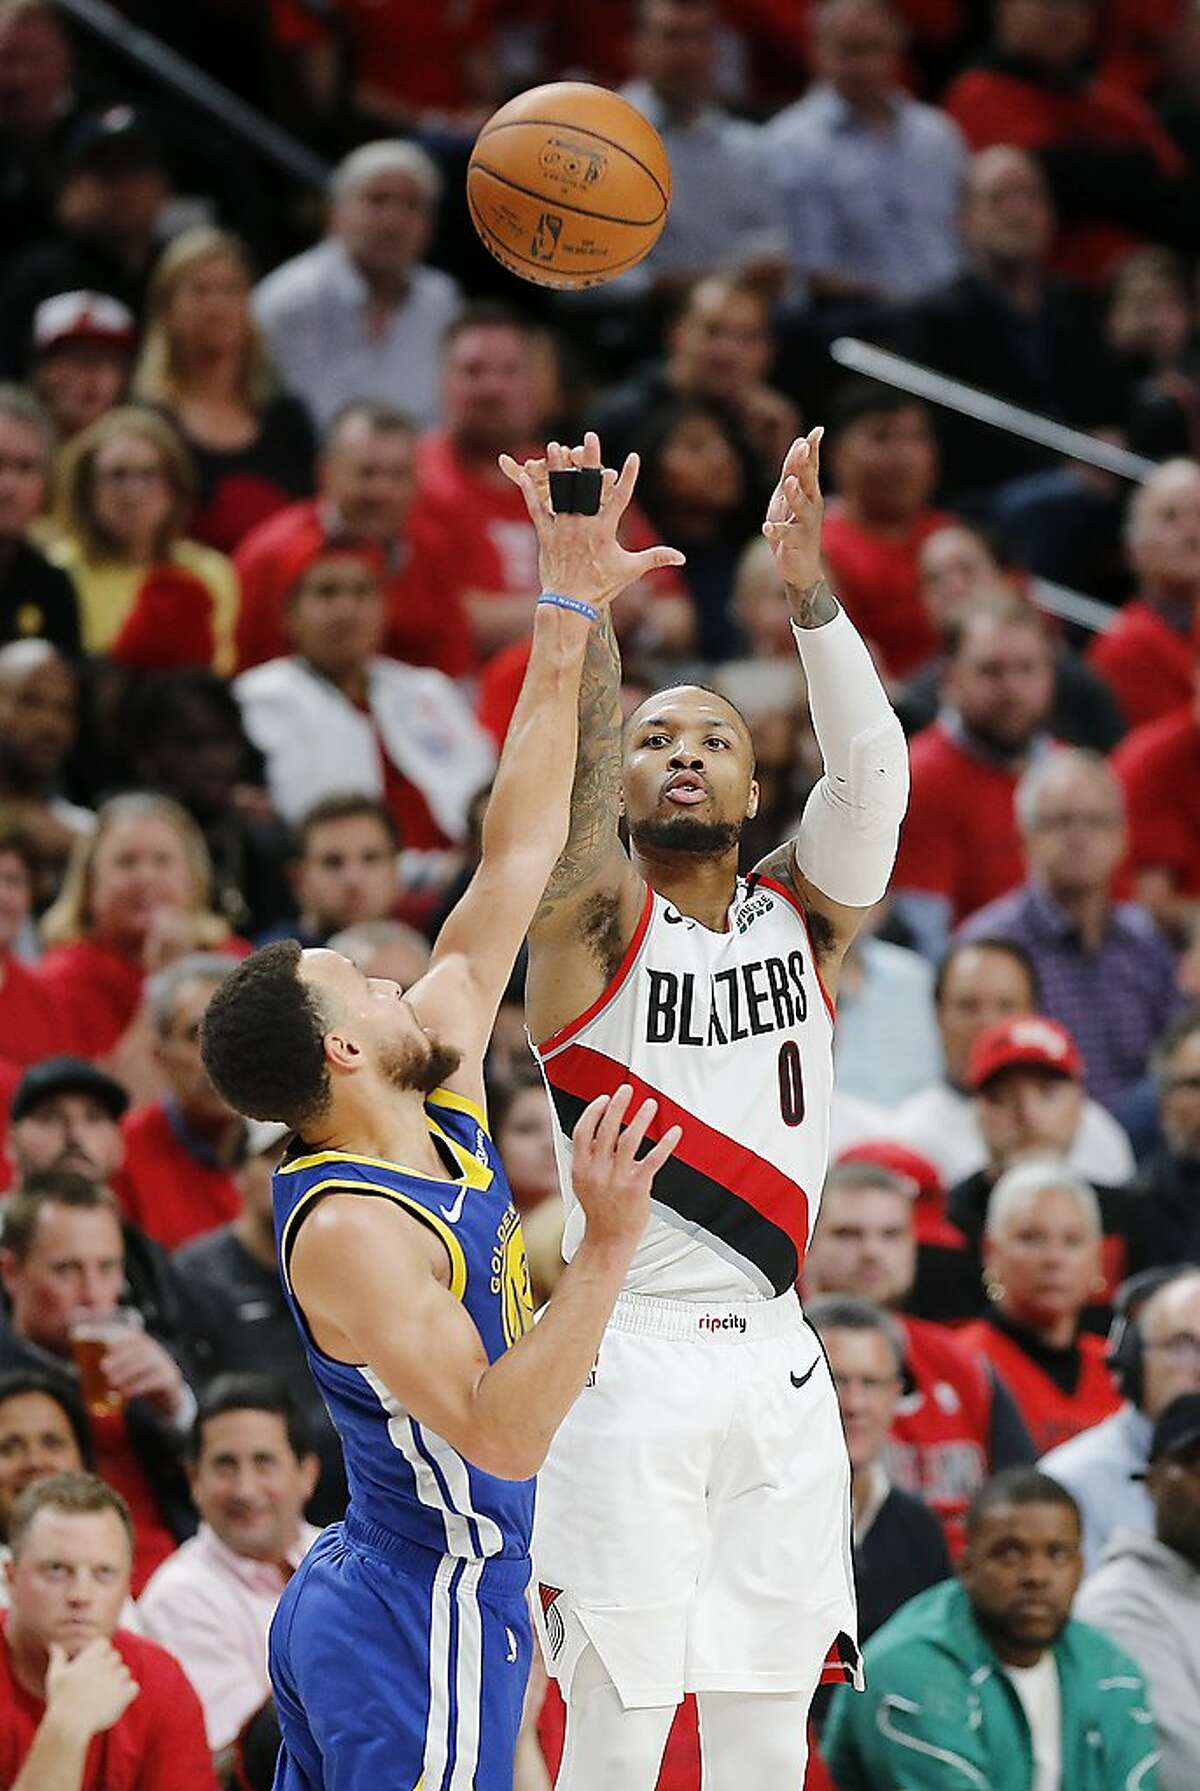 PORTLAND, OREGON - MAY 20: Damian Lillard #0 of the Portland Trail Blazers shoots the ball against Stephen Curry #30 of the Golden State Warriors during the second half in game four of the NBA Western Conference Finals at Moda Center on May 20, 2019 in Po